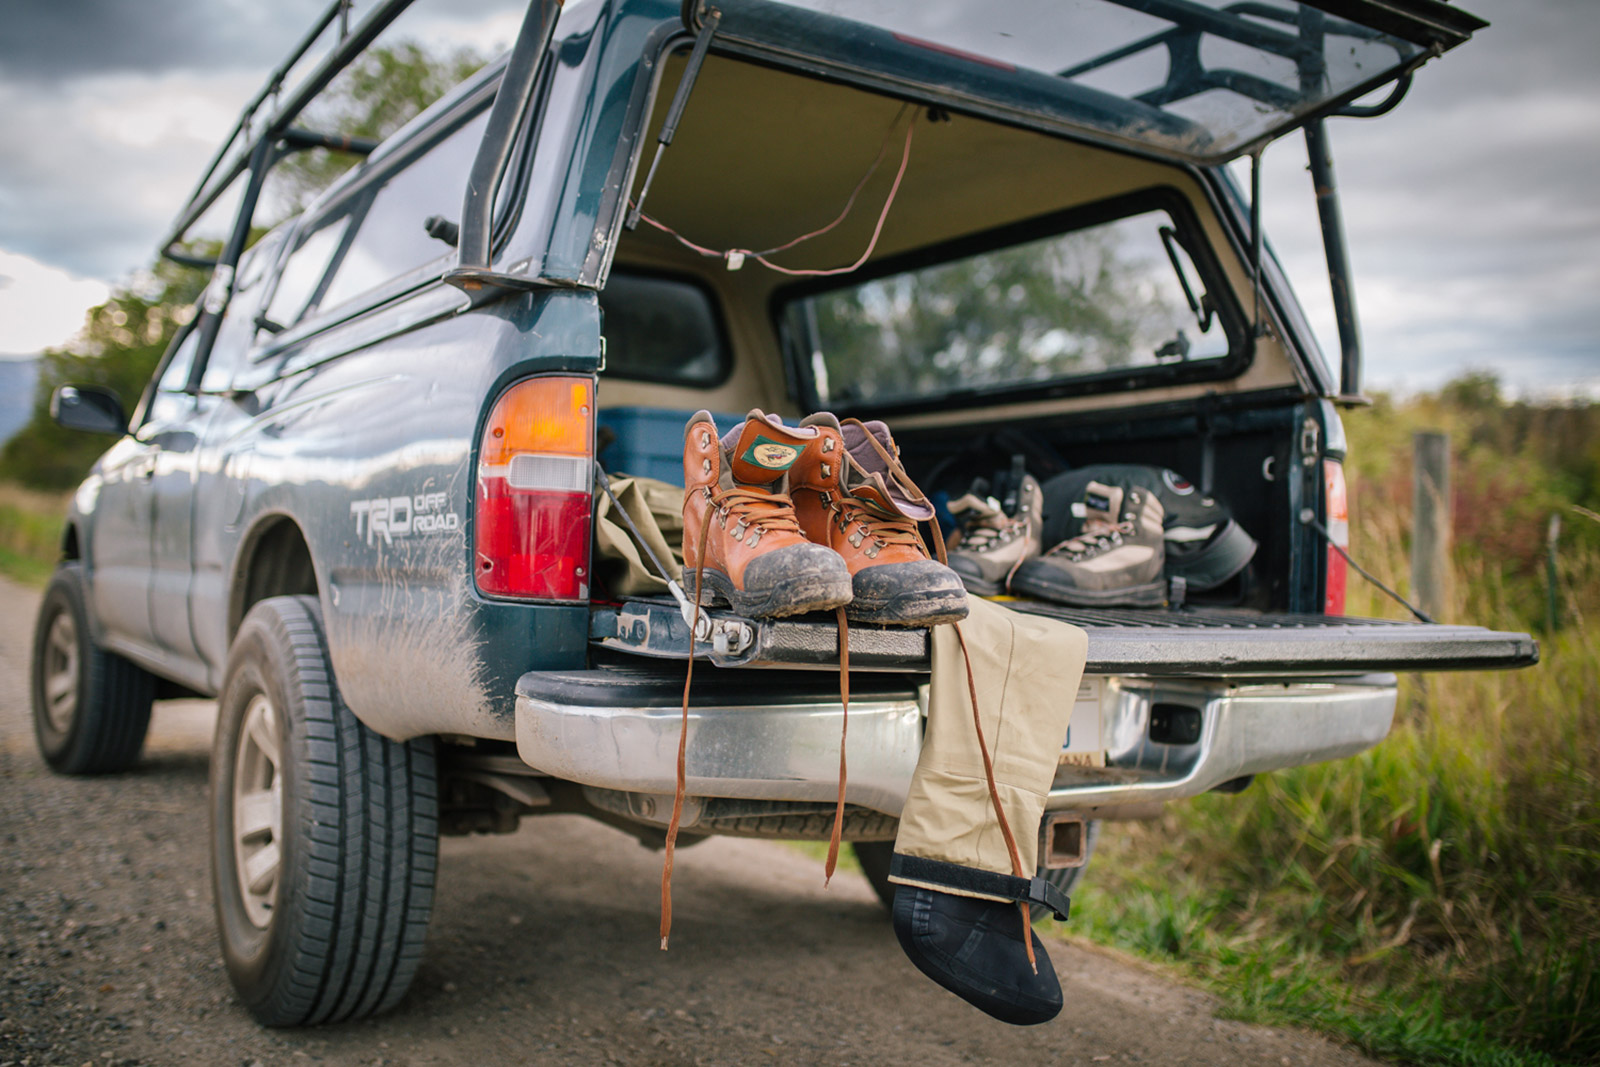 Patrick Burr prepares his fishing boots in this Montana photography session.